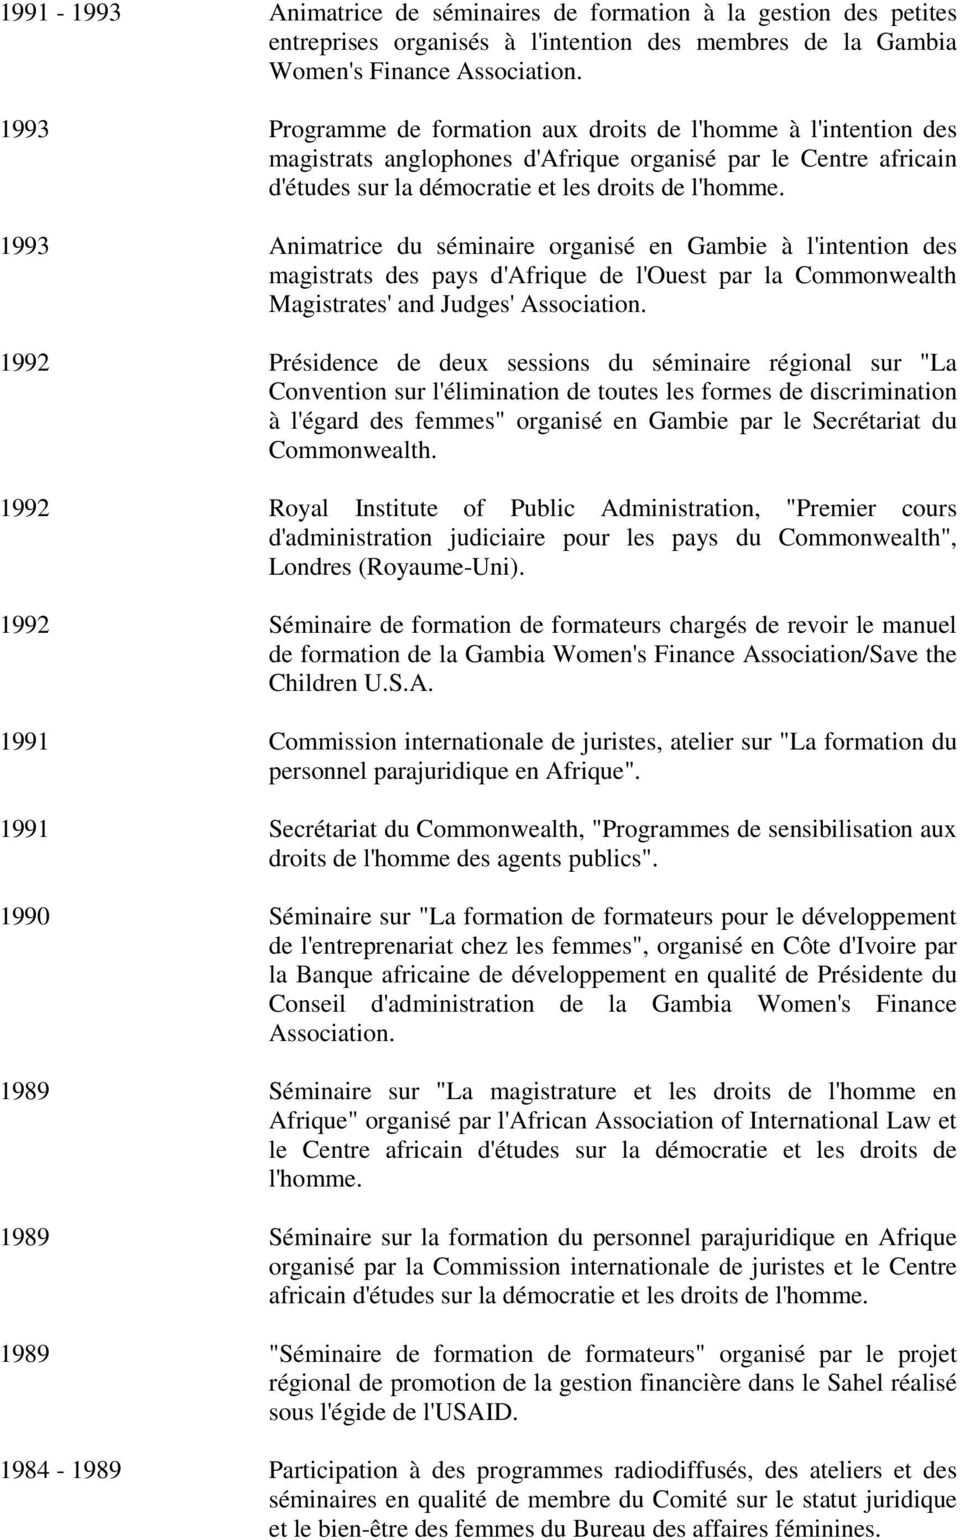 1993 Animatrice du séminaire organisé en Gambie à l'intention des magistrats des pays d'afrique de l'ouest par la Commonwealth Magistrates' and Judges' Association.